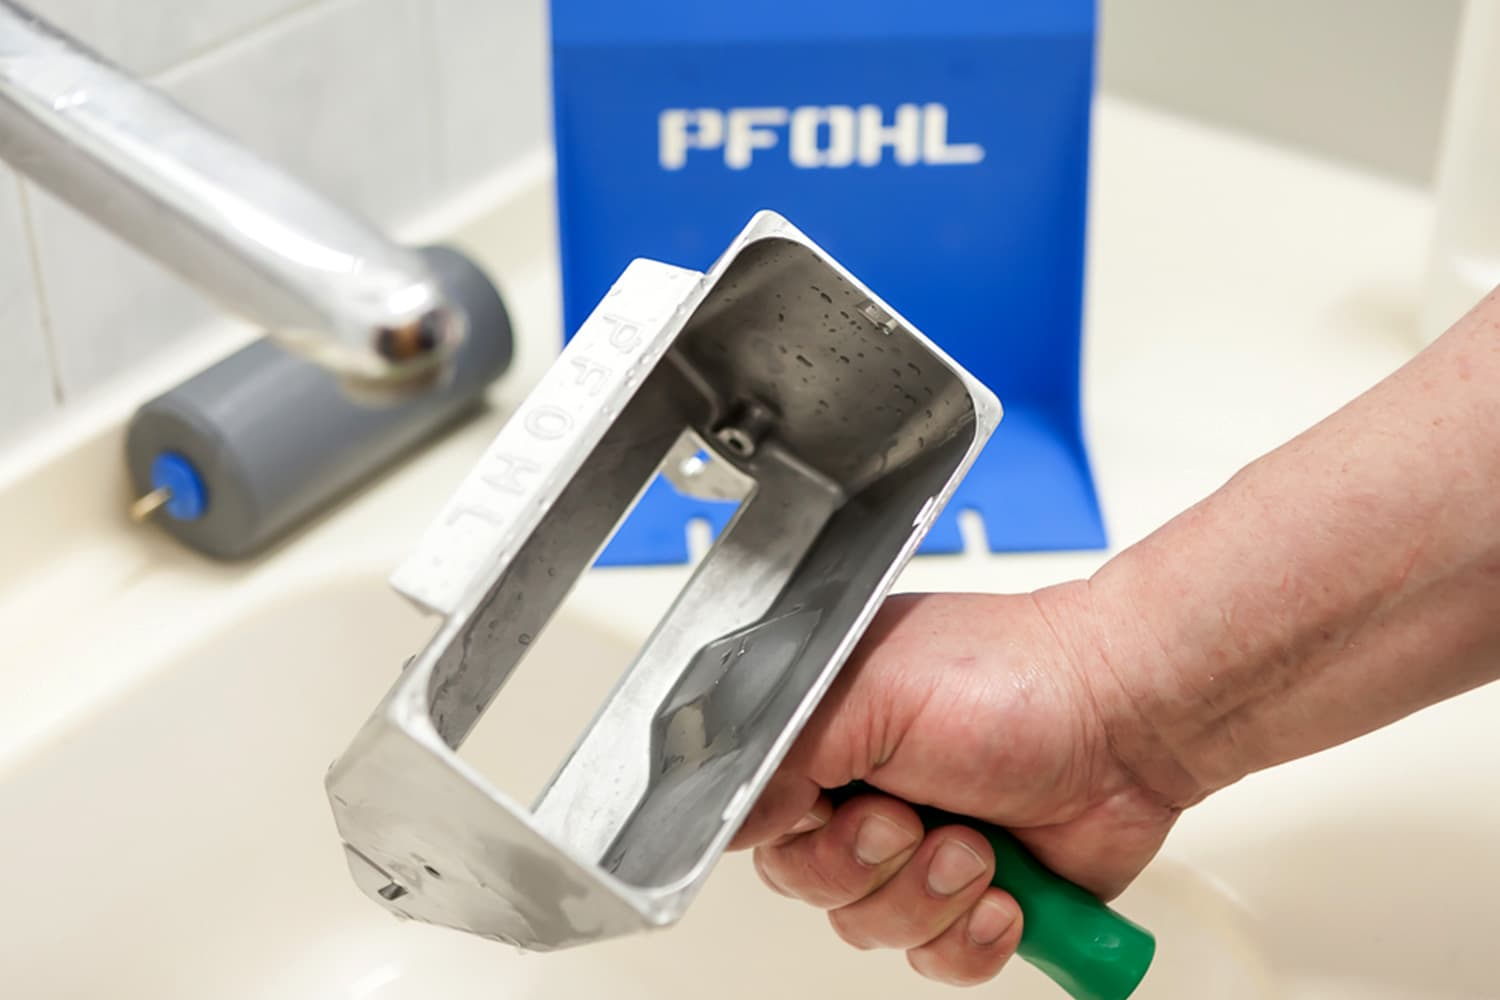 The PFOHL Glue Roller while cleaning